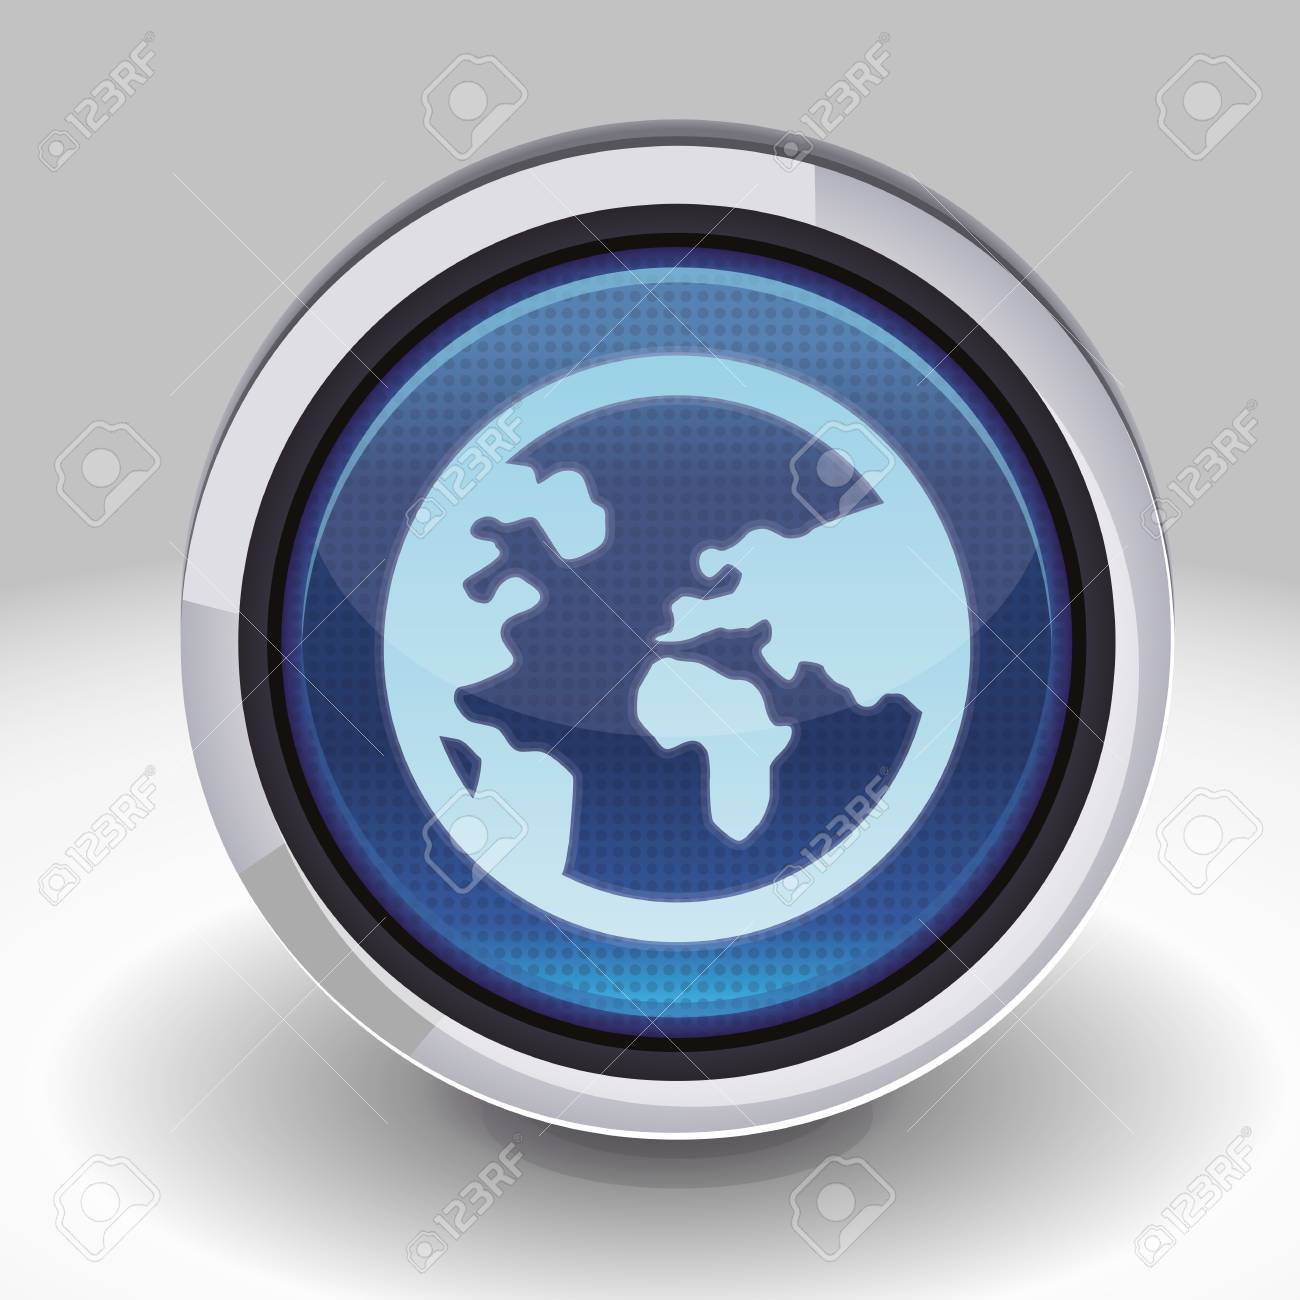 button with internet icon - blue design element Stock Vector - 16170687